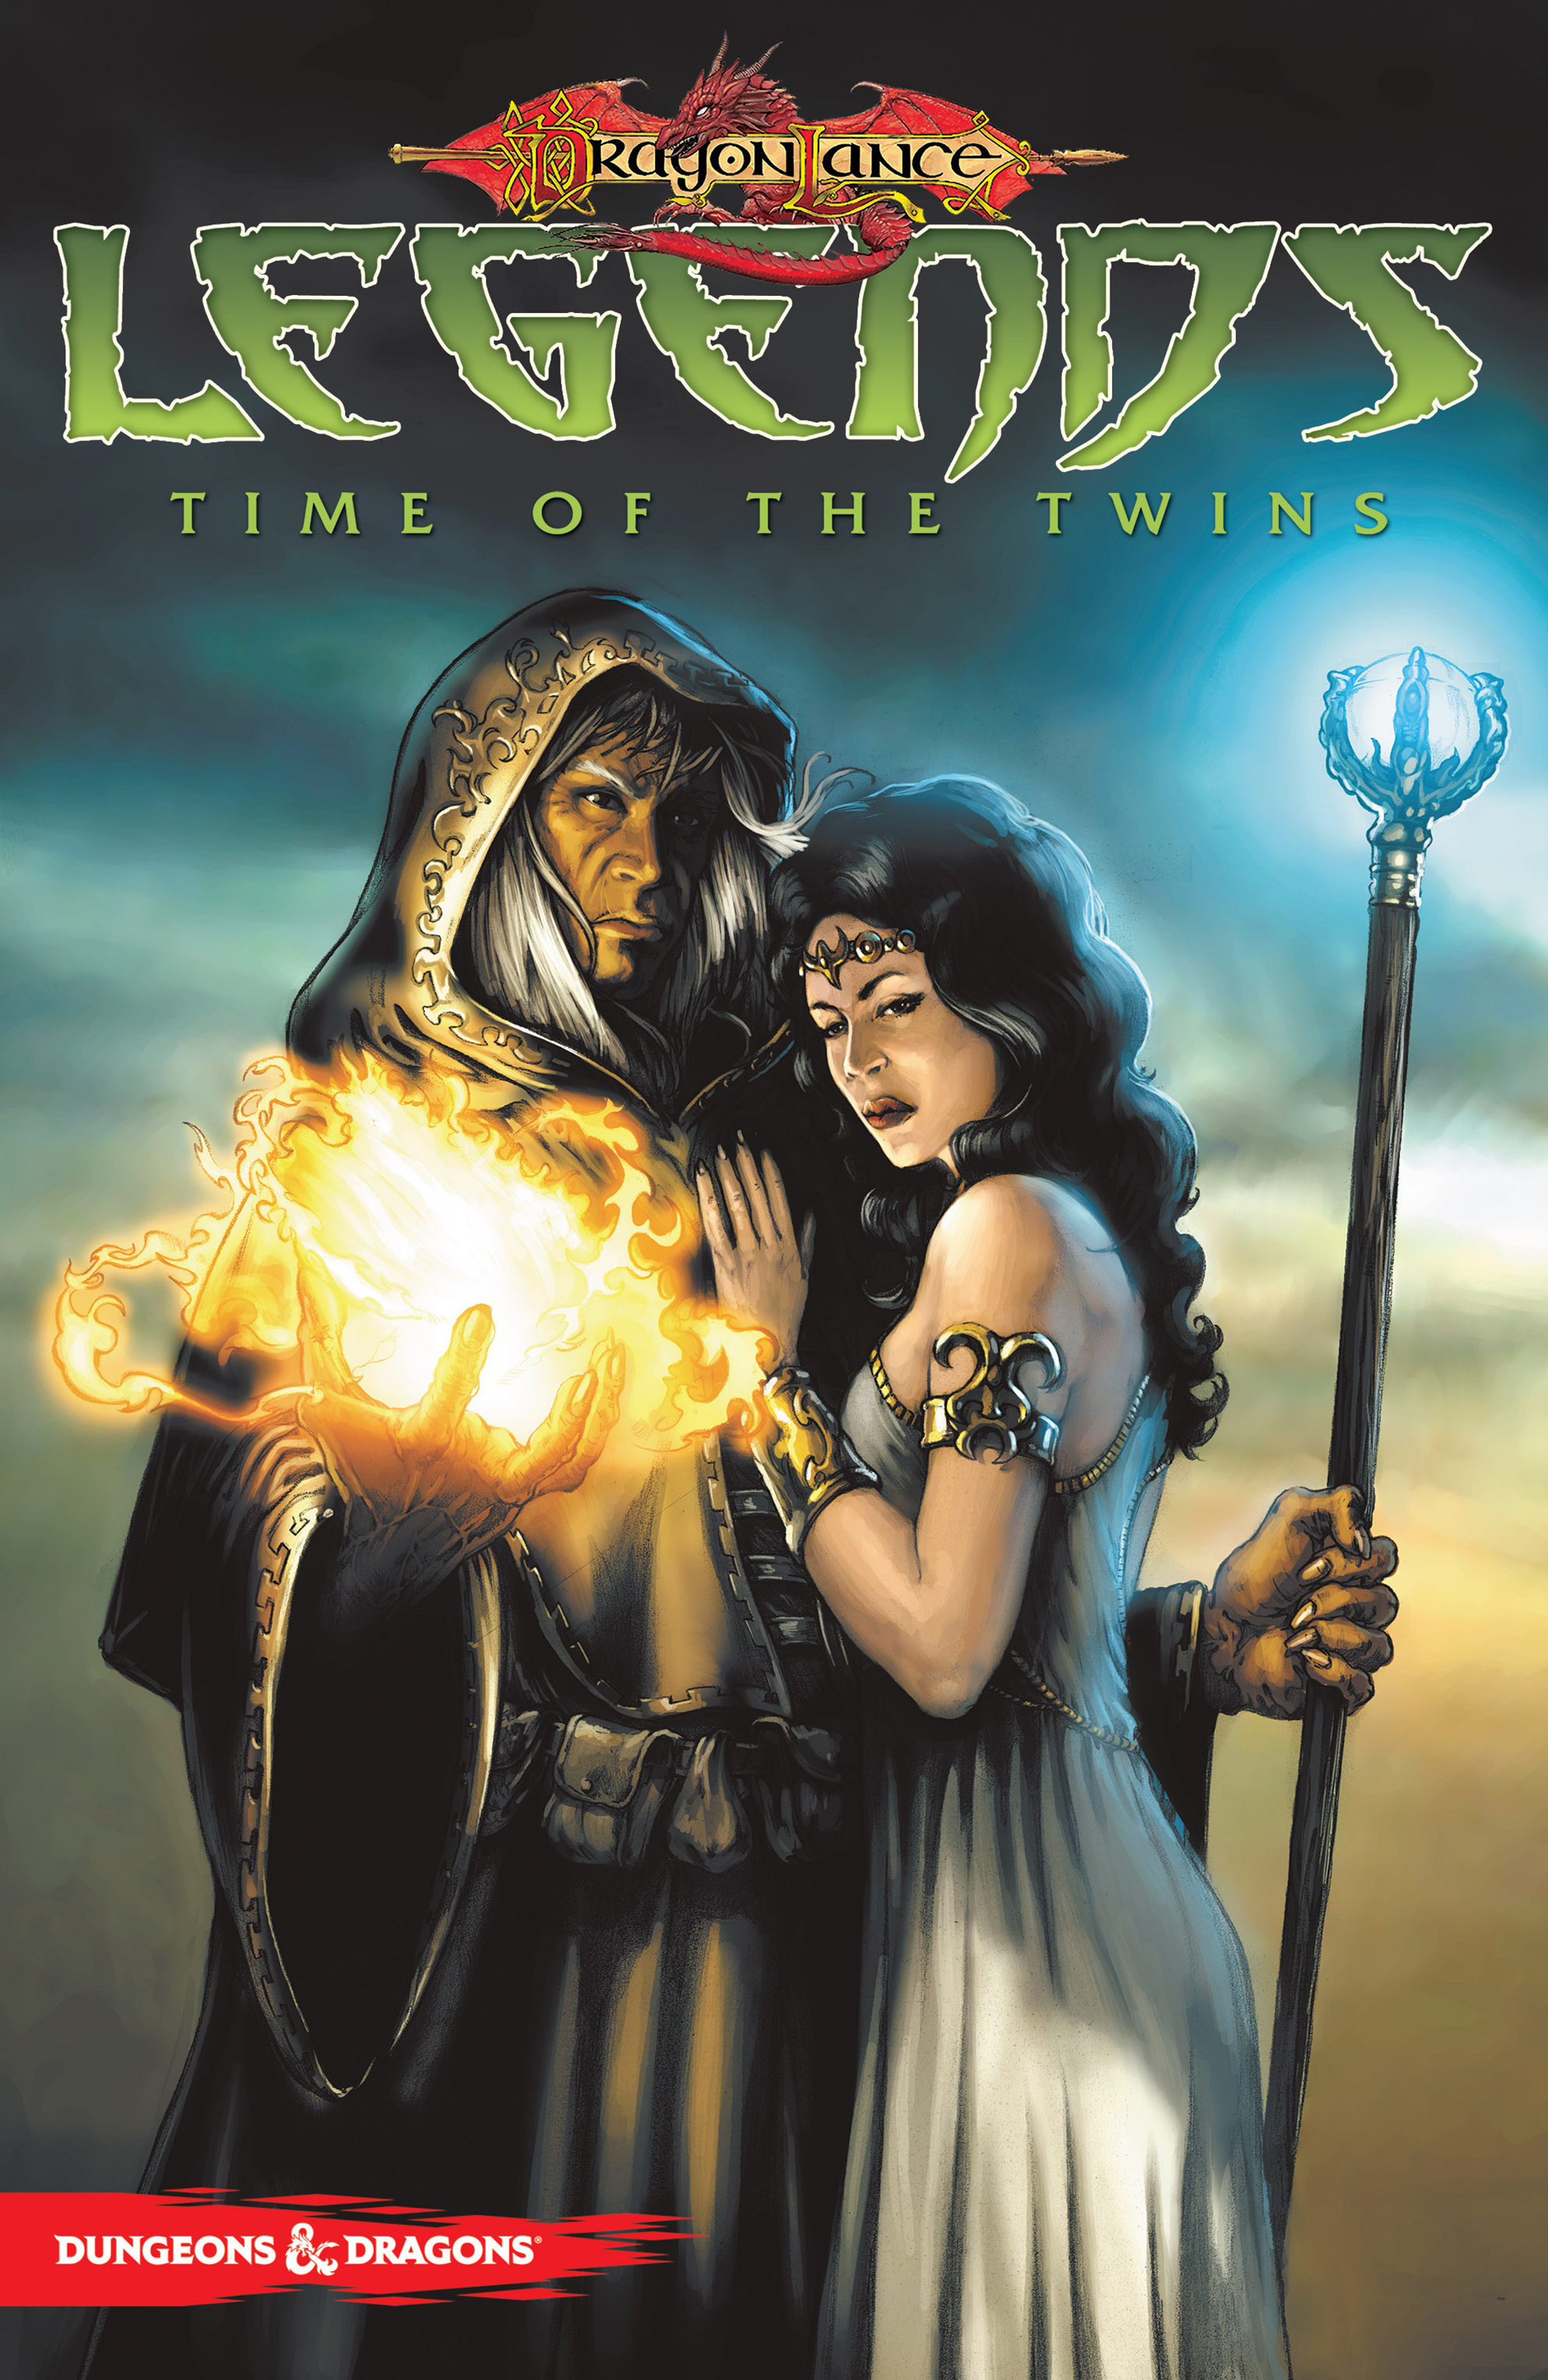 Dragonlance Legends: Time of the Twins TPB Page 1